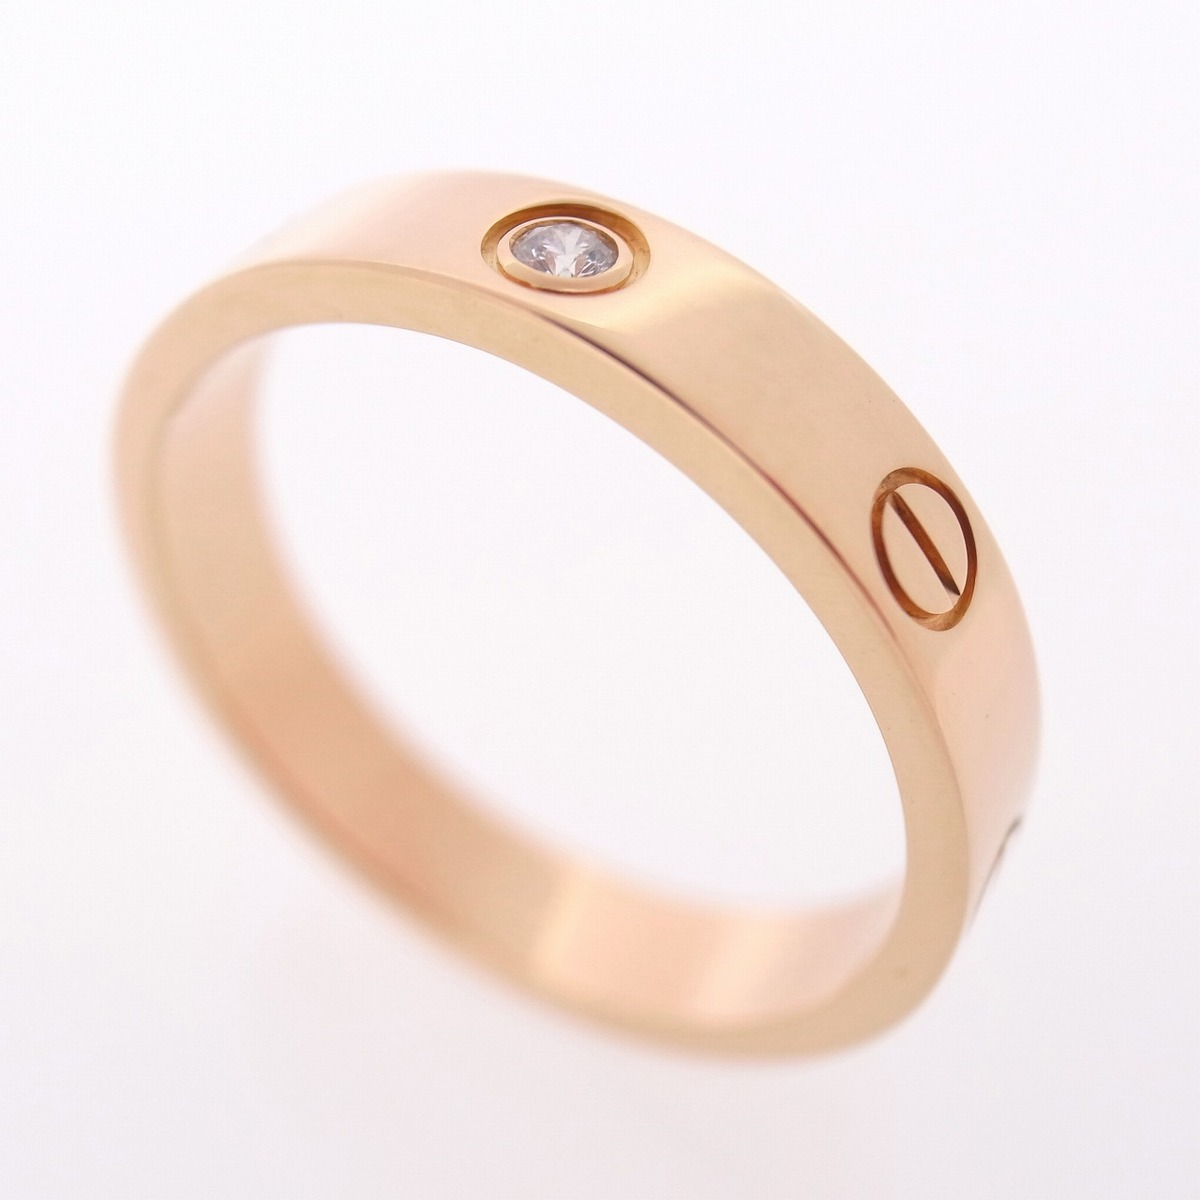 Details about CARTIER 18K ROSE GOLD LOVE WEDDING BAND RING WITH 1 ...